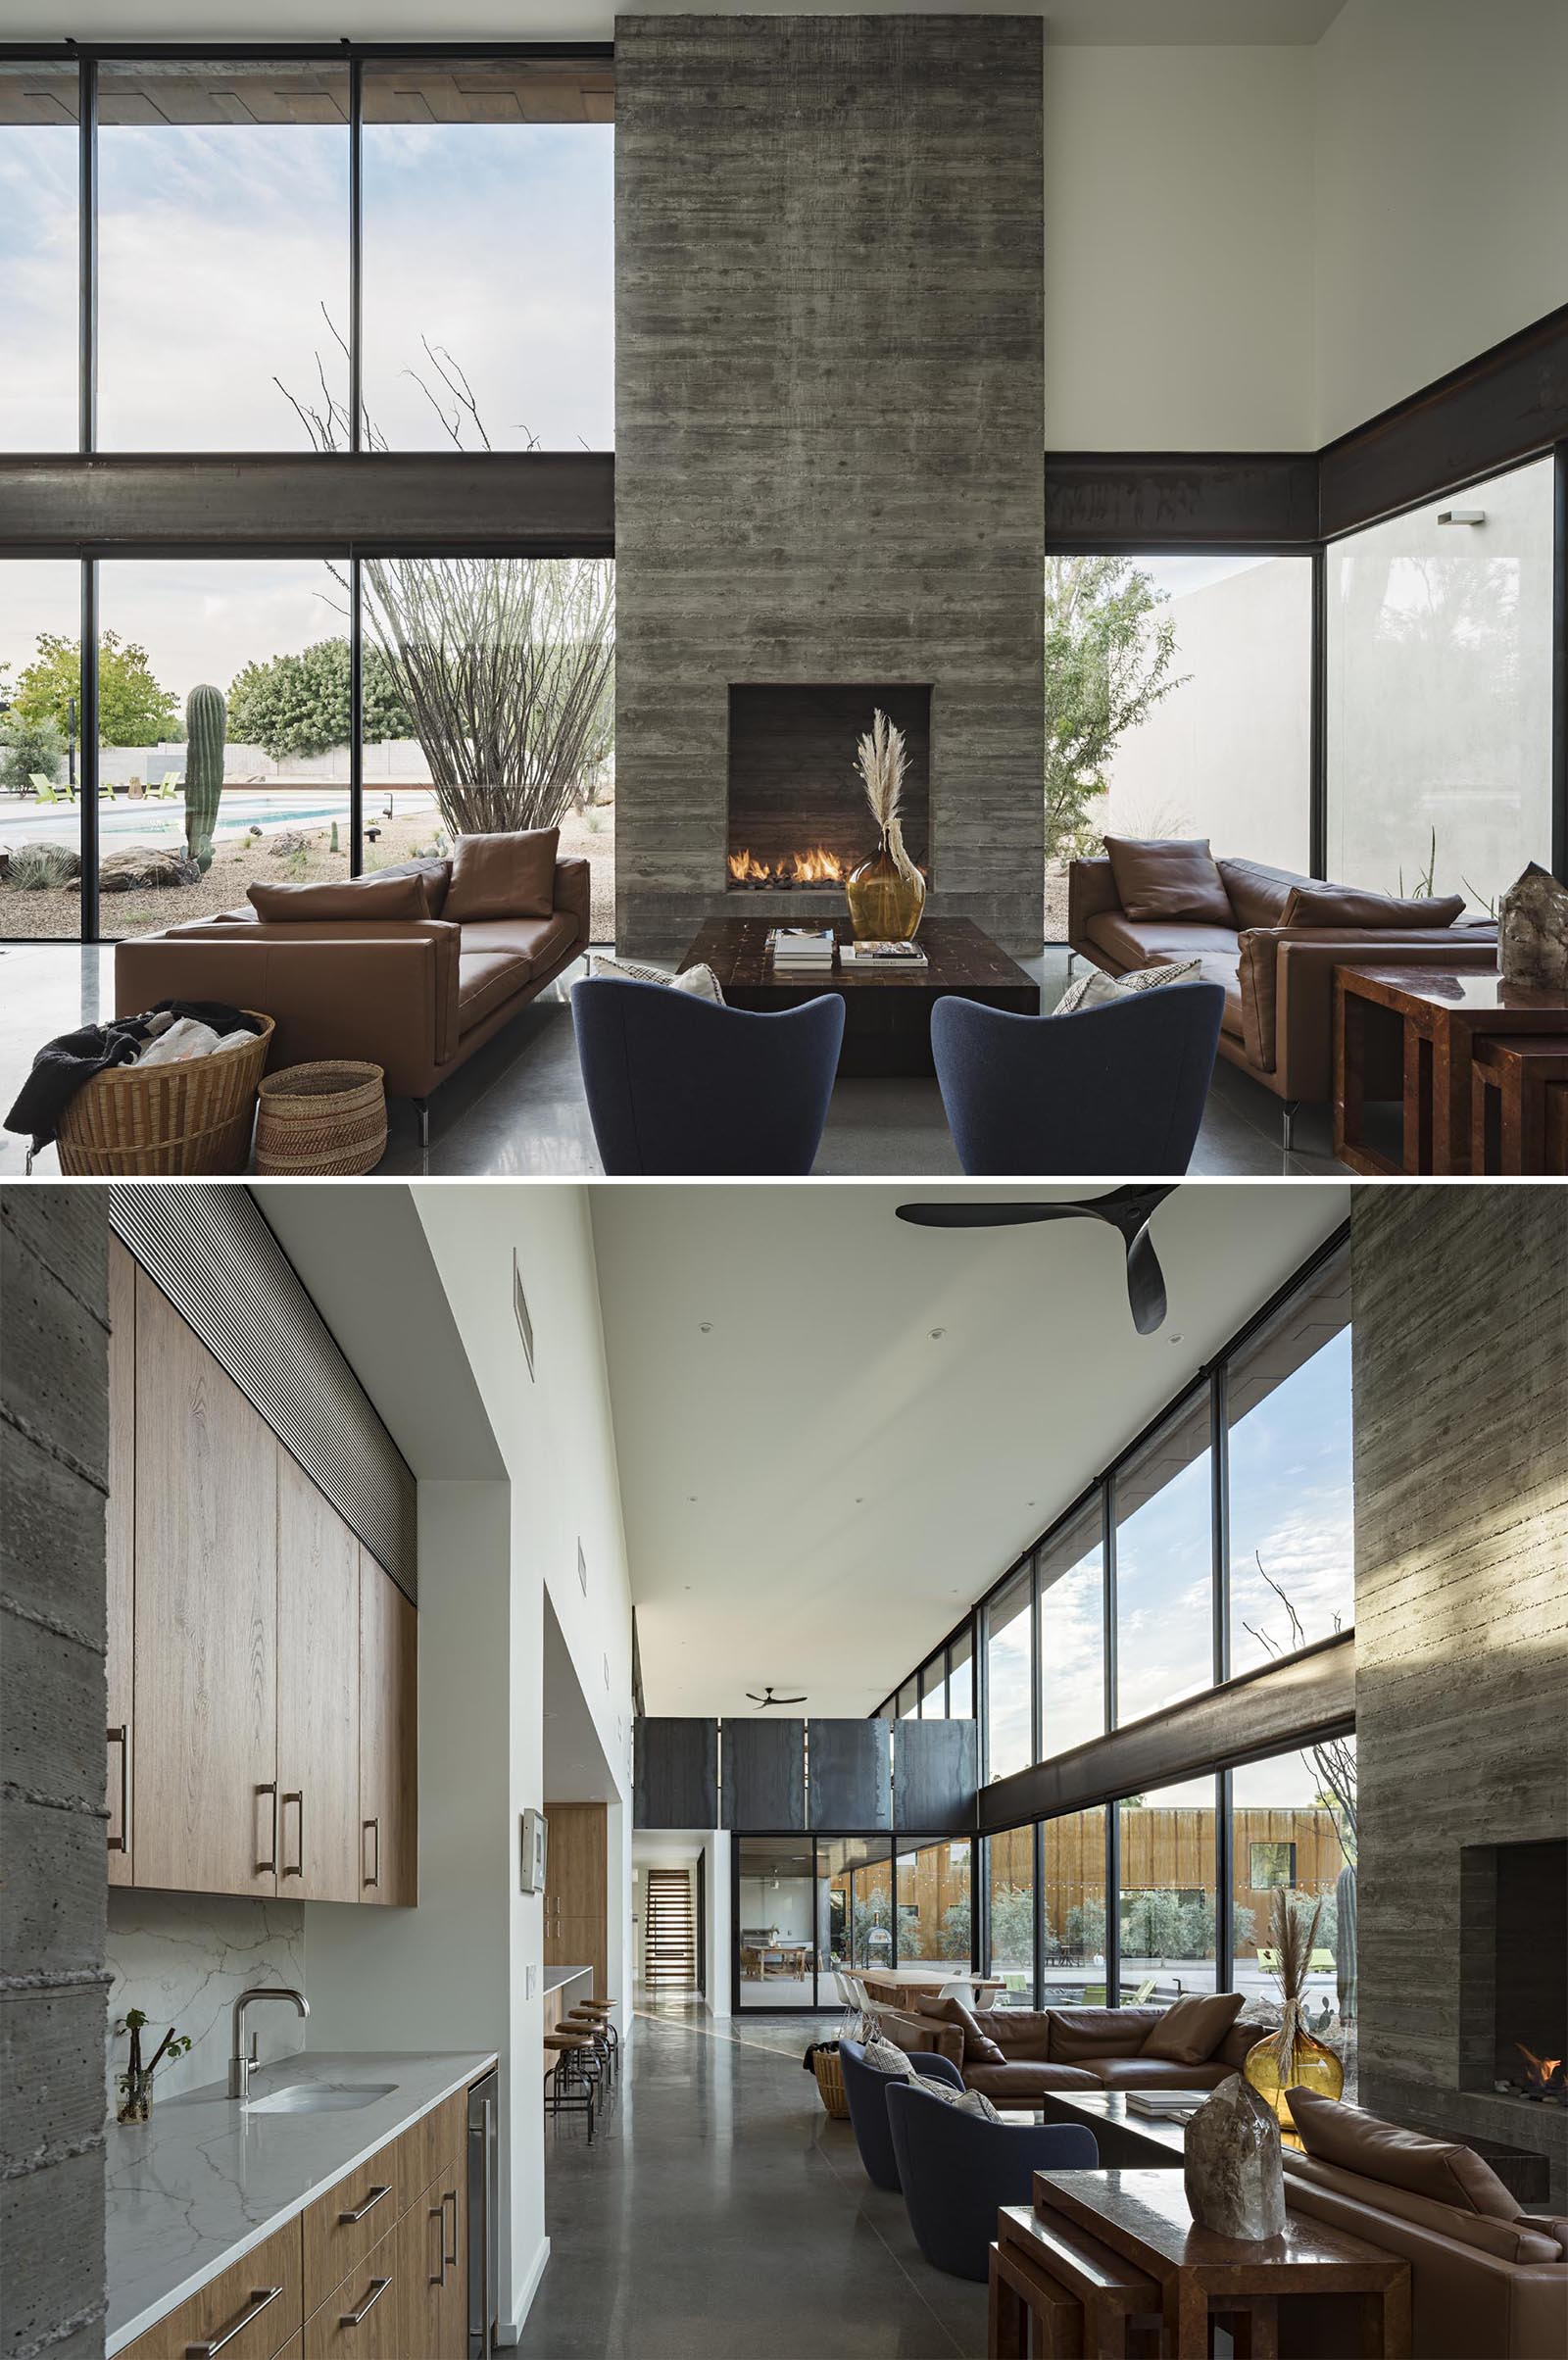 This modern living room has a board-formed concrete fireplace hat draws your eye up to the high ceiling.